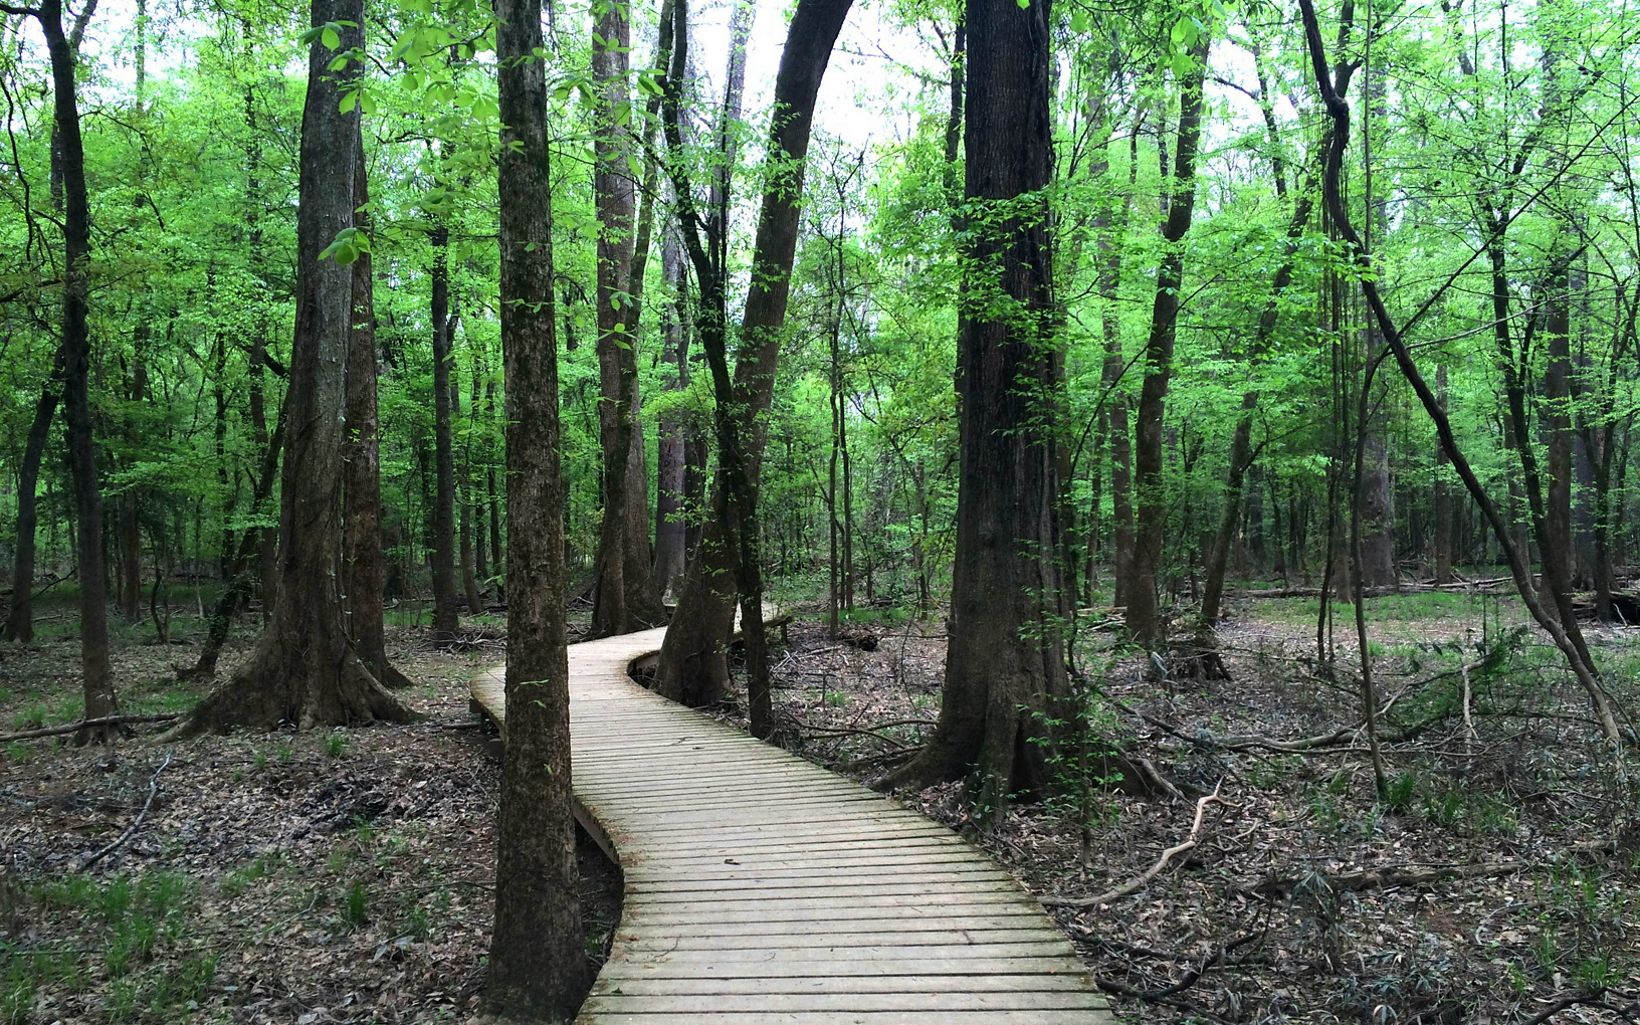 A boardwalk winds through the landscape of Congaree National Park.